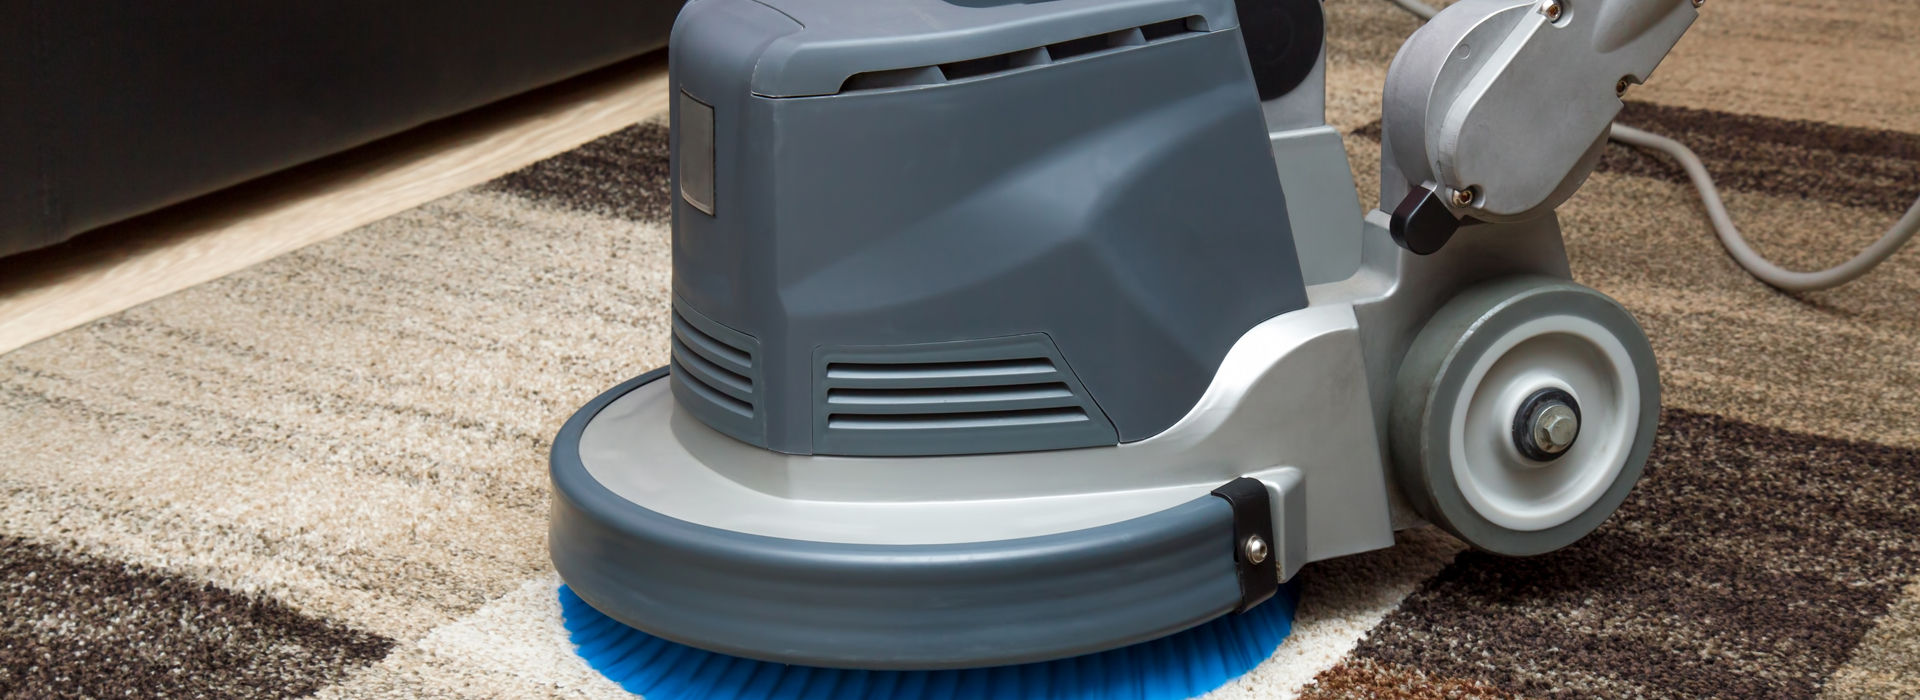 Carpet Cleaning Norwich Carpet Cleaners Nye Cleaning